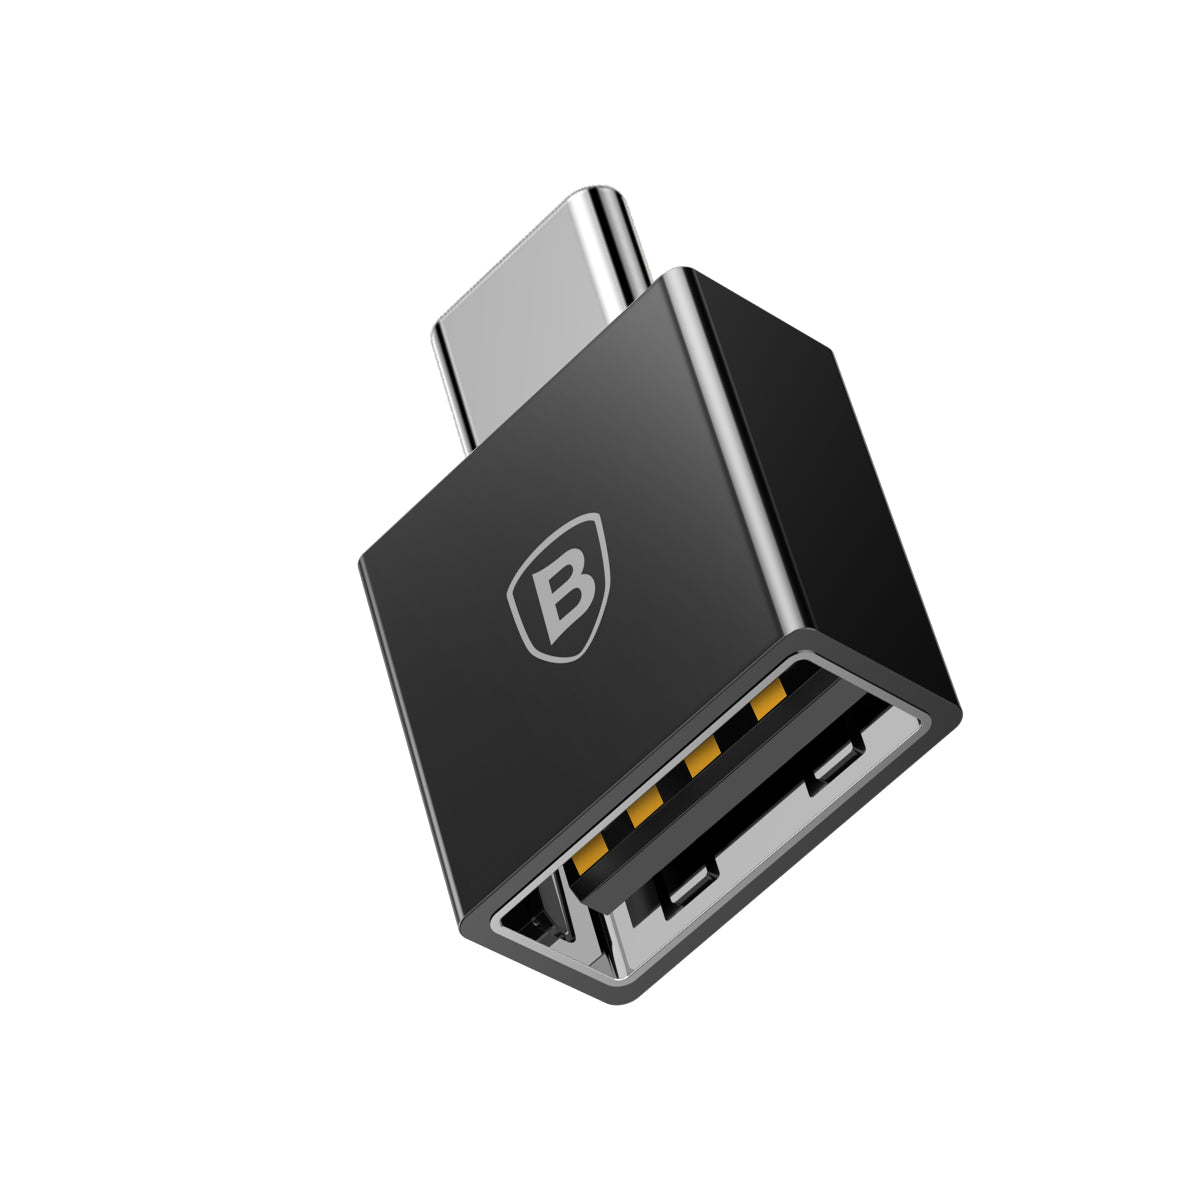 Baseus_Exquisite_Type_C_Male_to_USB_female_adapter_SD9P2G9FXL9Y.jpg